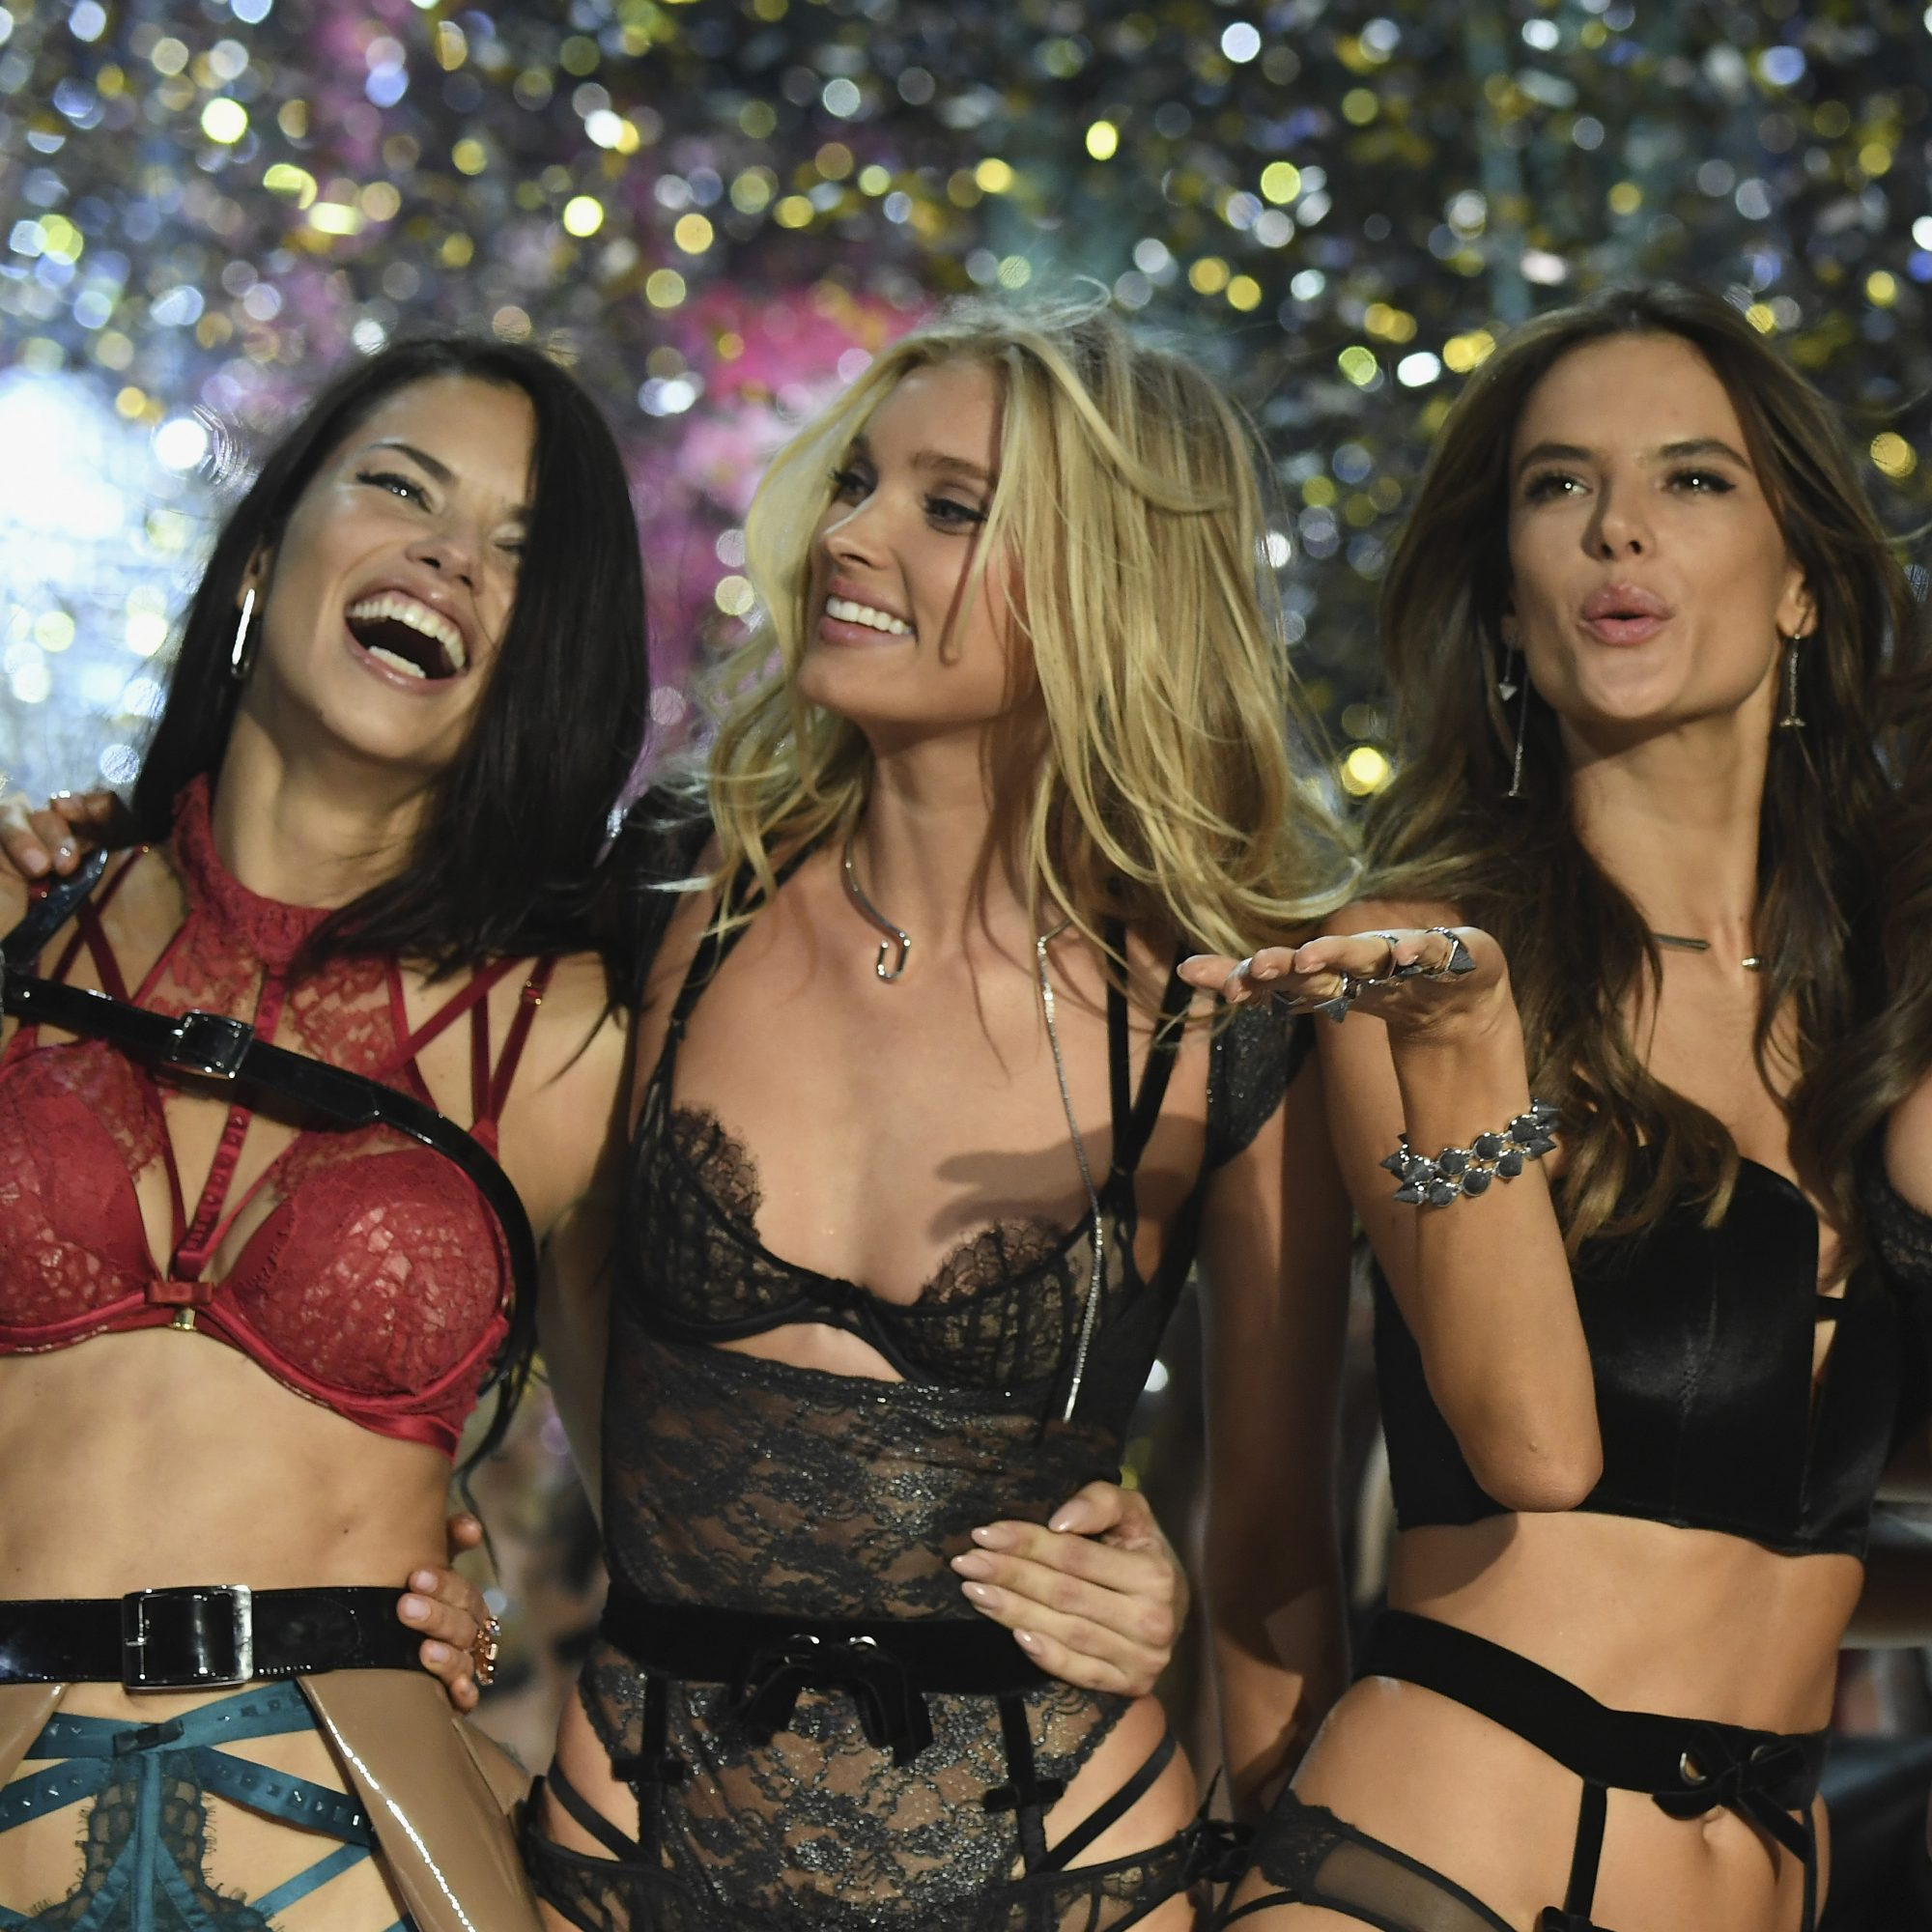 victorias-secret-models-eating-fwx